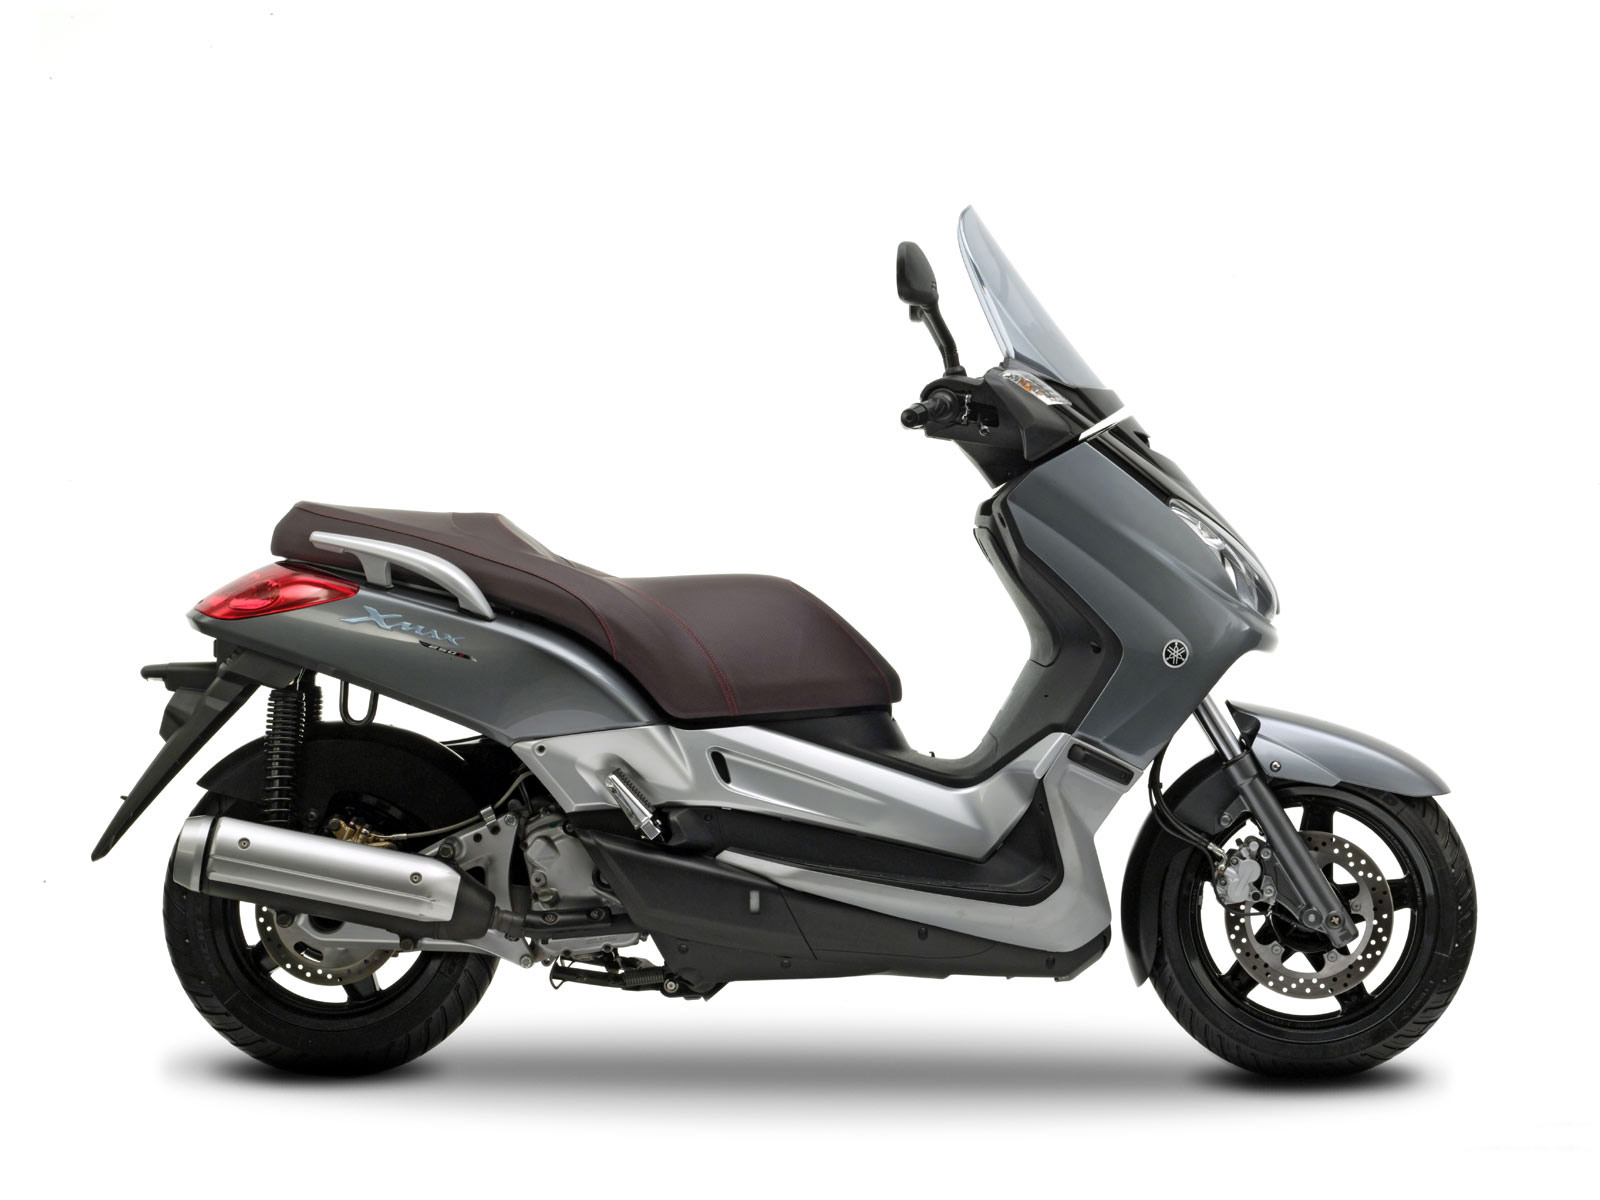 yamaha scooter pictures 2008 x max 250. Black Bedroom Furniture Sets. Home Design Ideas